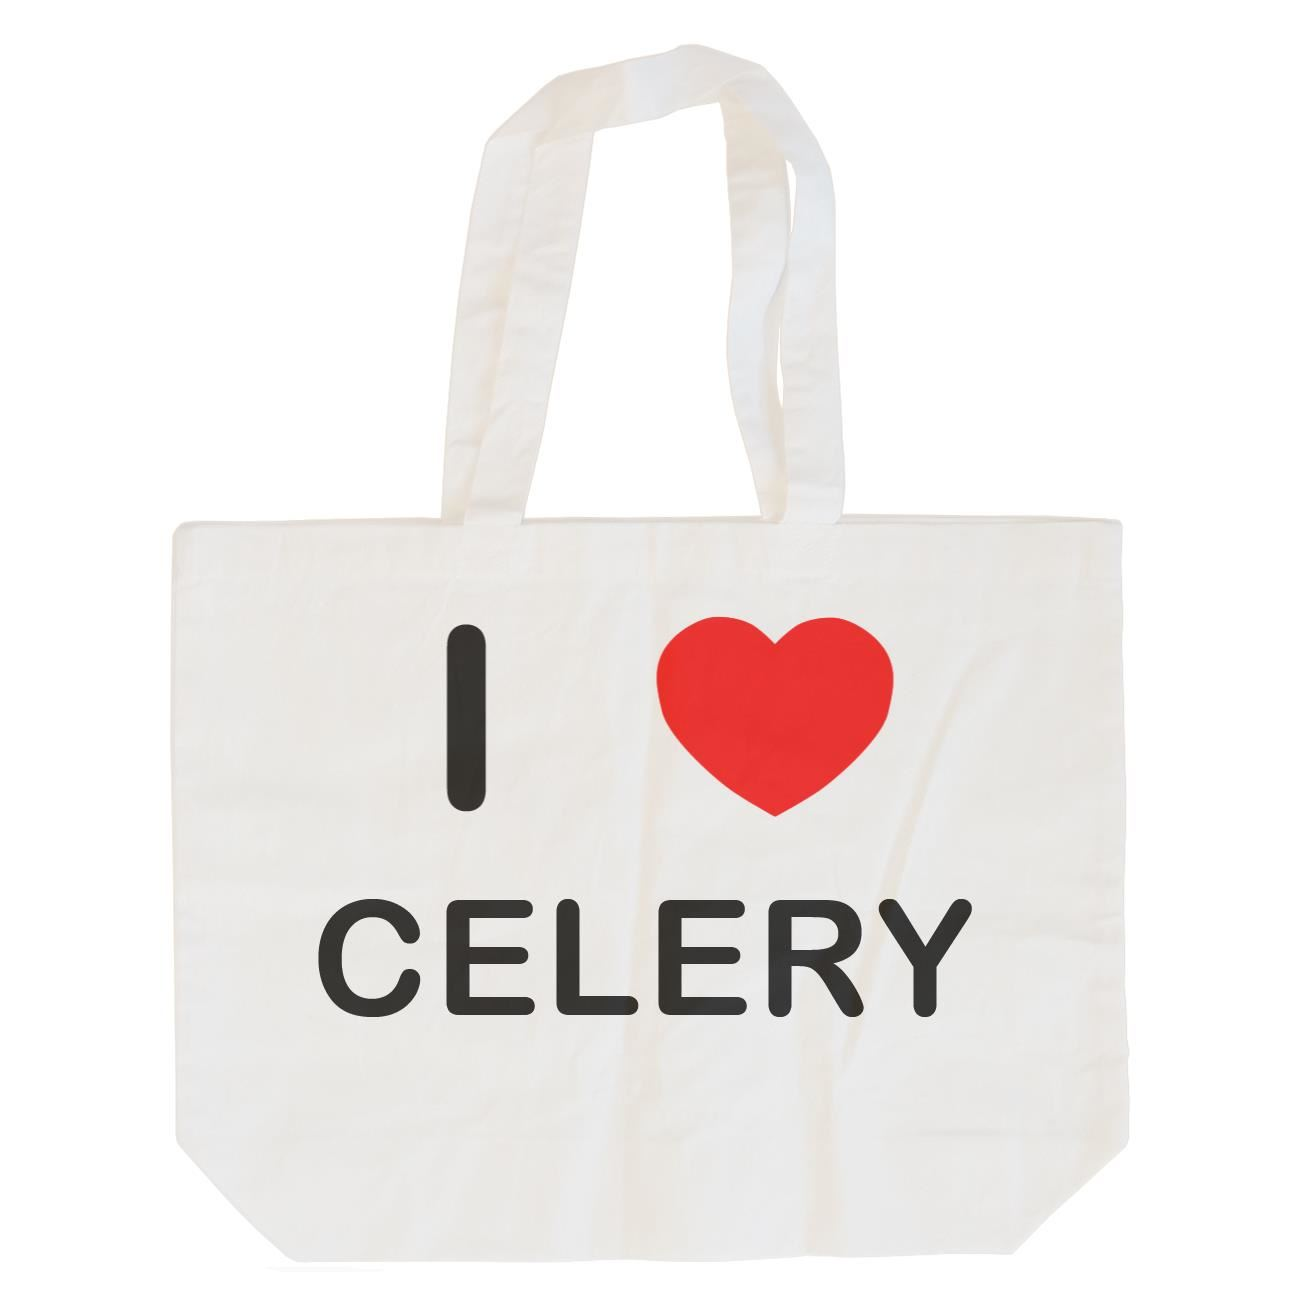 I Love Celery - Cotton Bag | Size choice Tote, Shopper or Sling